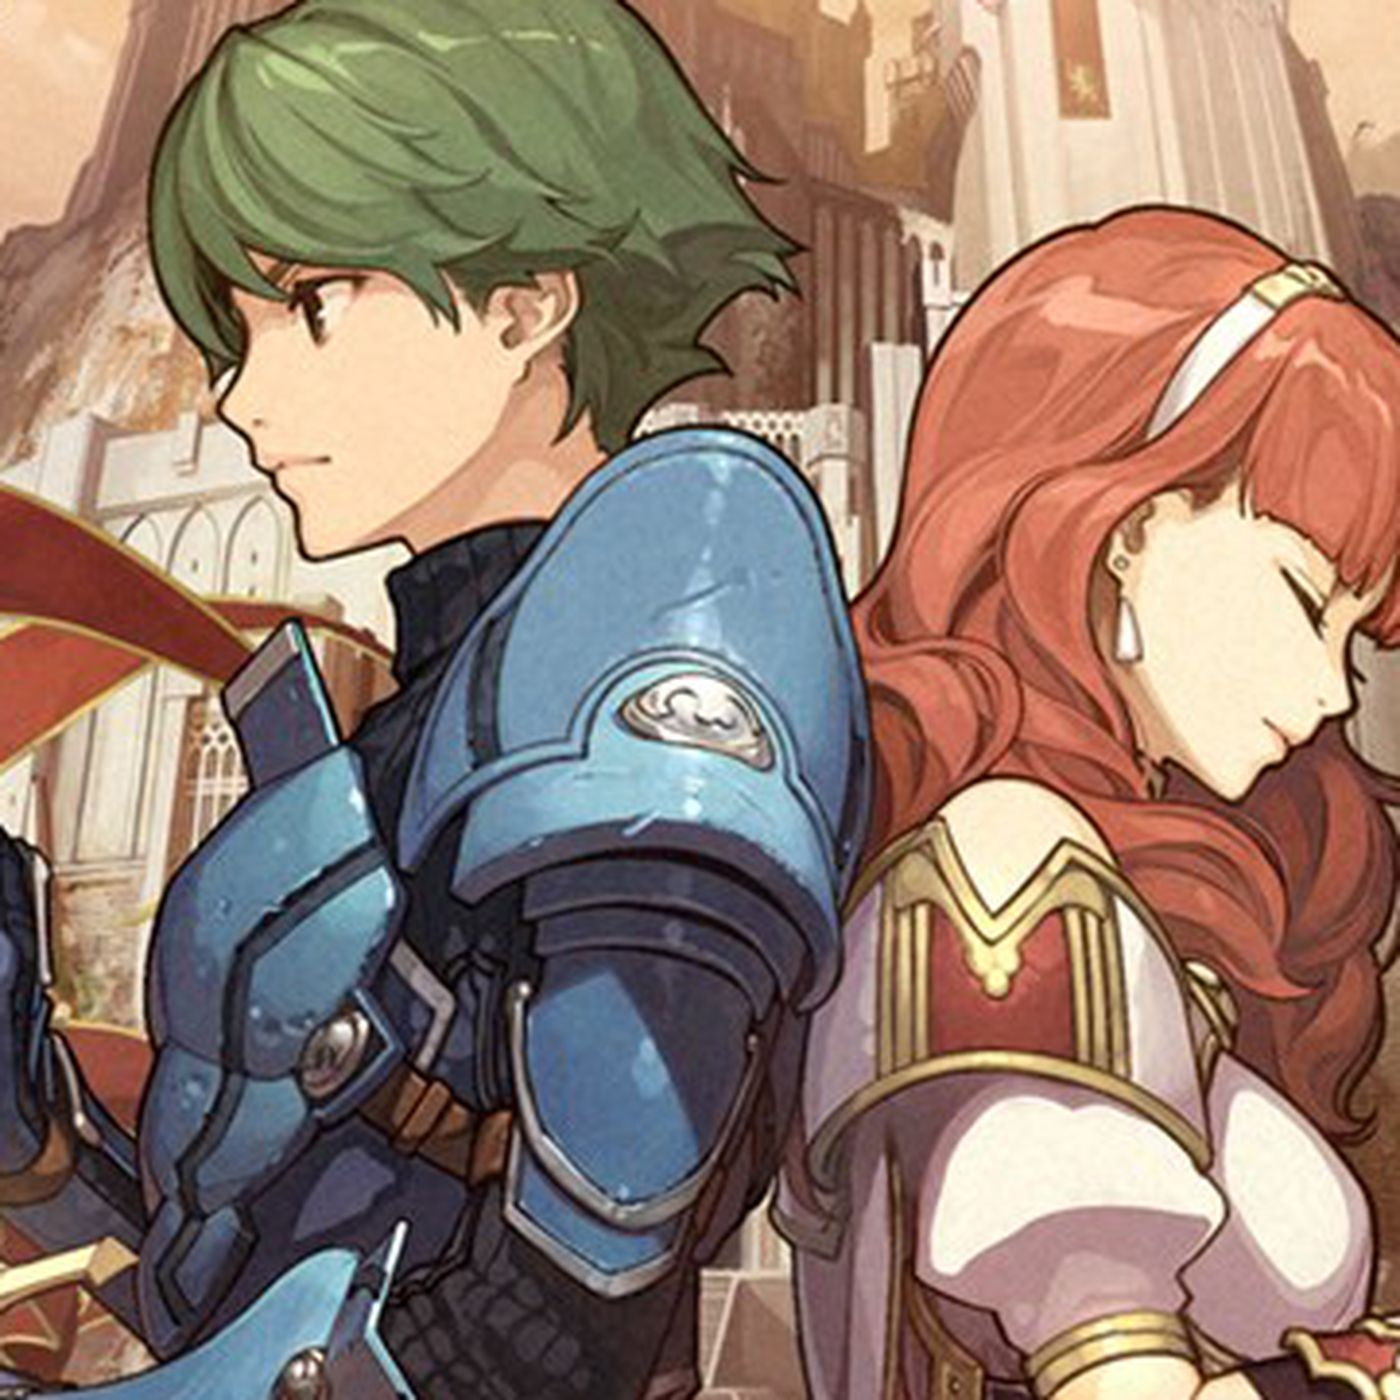 Fire Emblem Echoes Shadows Of Valentia May Have A Big Learning